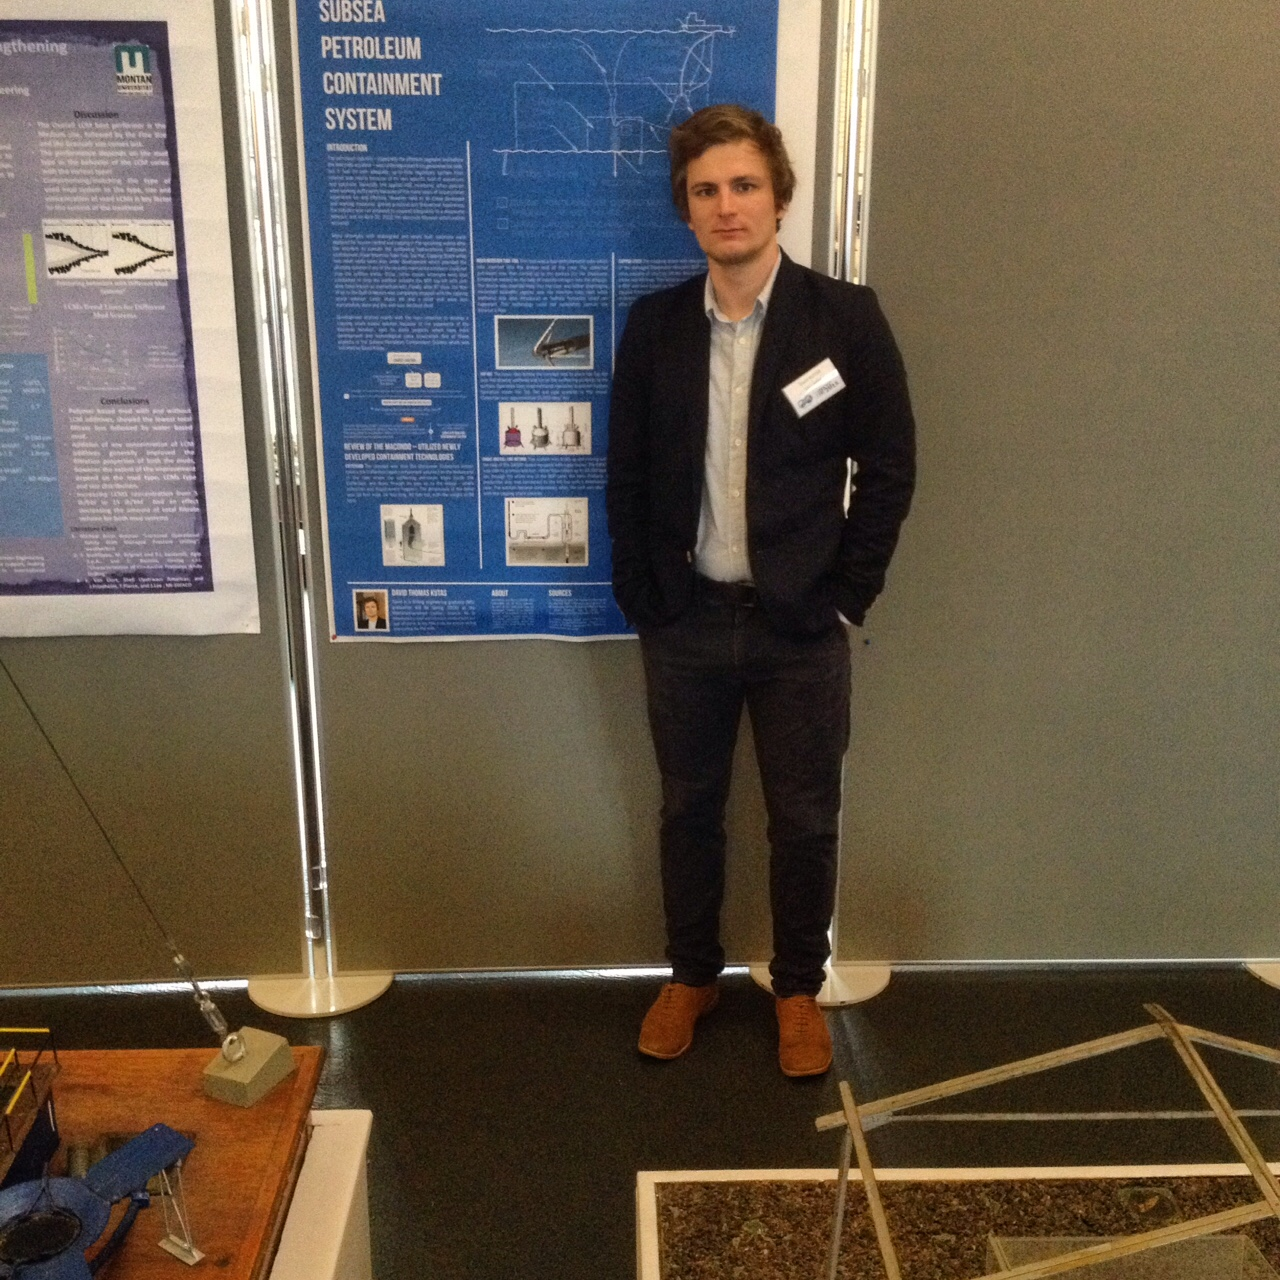 David Kutas with his poster presentation - Subsea Petroleum Containment System